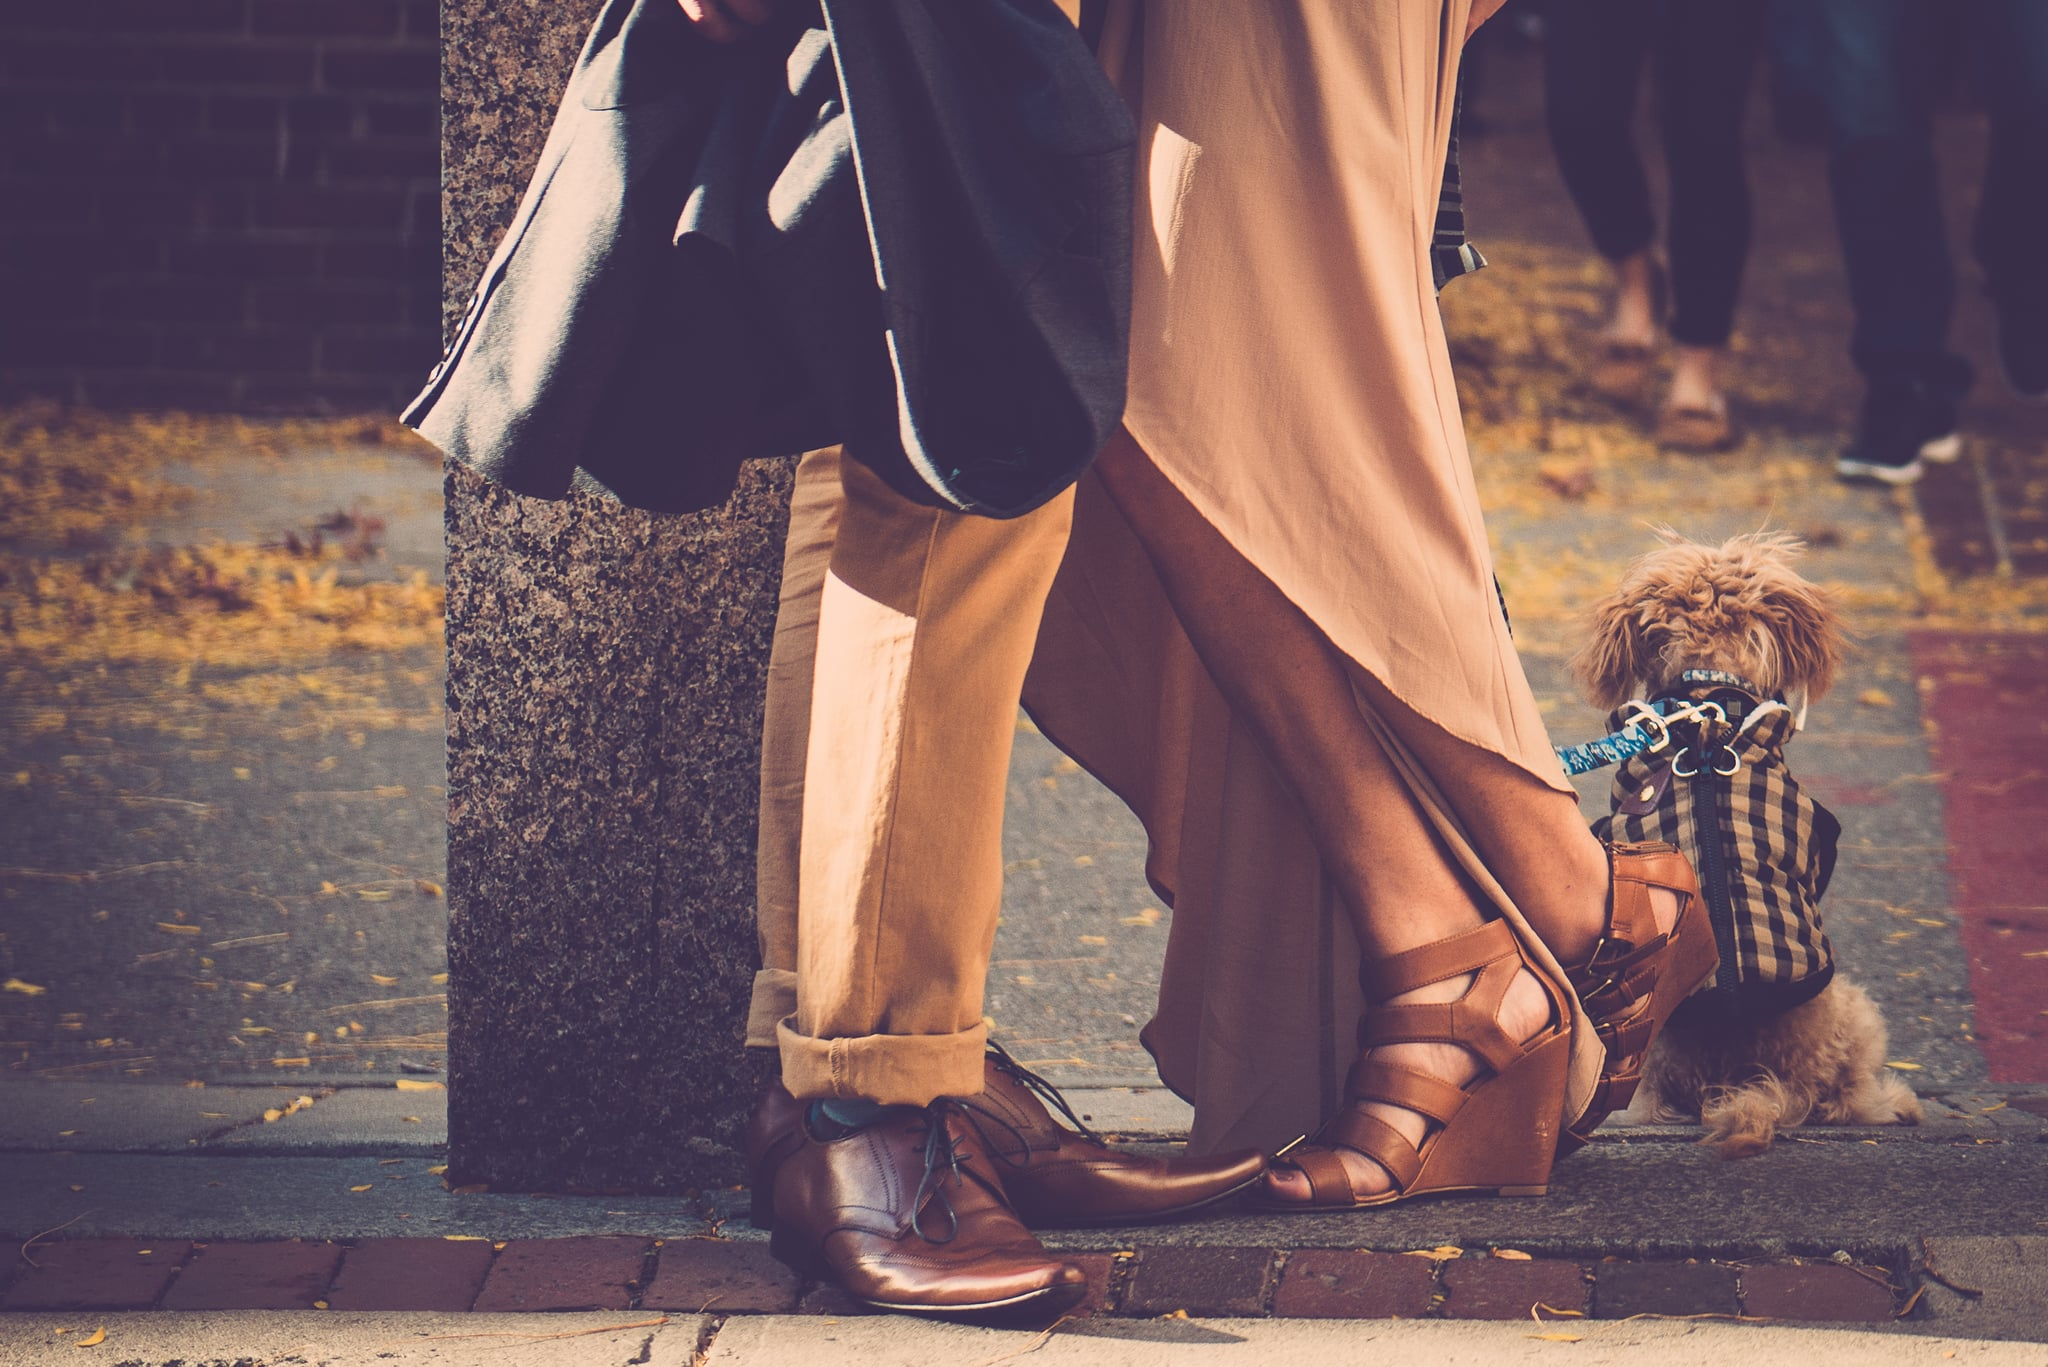 """How long did you date before getting engaged? """"We dated for one and a half years before getting engaged. When long distance is a major factor in the relationship, you get to know the person very well, very fast. A few months into our relationship he pretty much knew all about my imperfections and flaws in addition to all the good things, too, of course! We both knew very early on how special our bond was."""" Photo by Christian Pleva"""